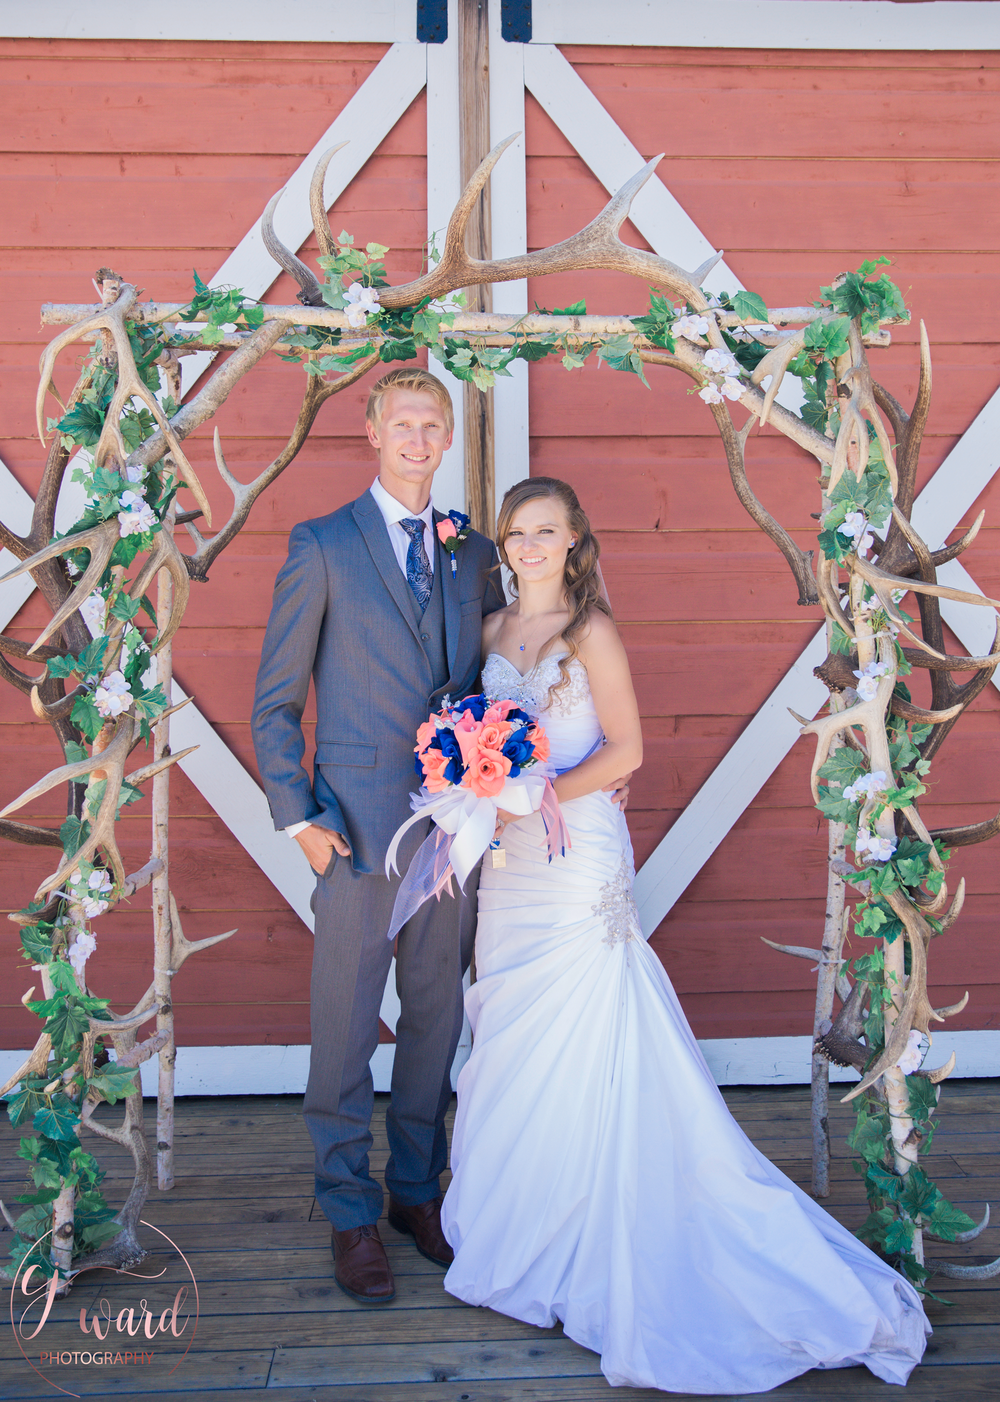 Boise-Wedding-Photographer-Mountain-Wedding-CJ-Ward-Photography-19.png